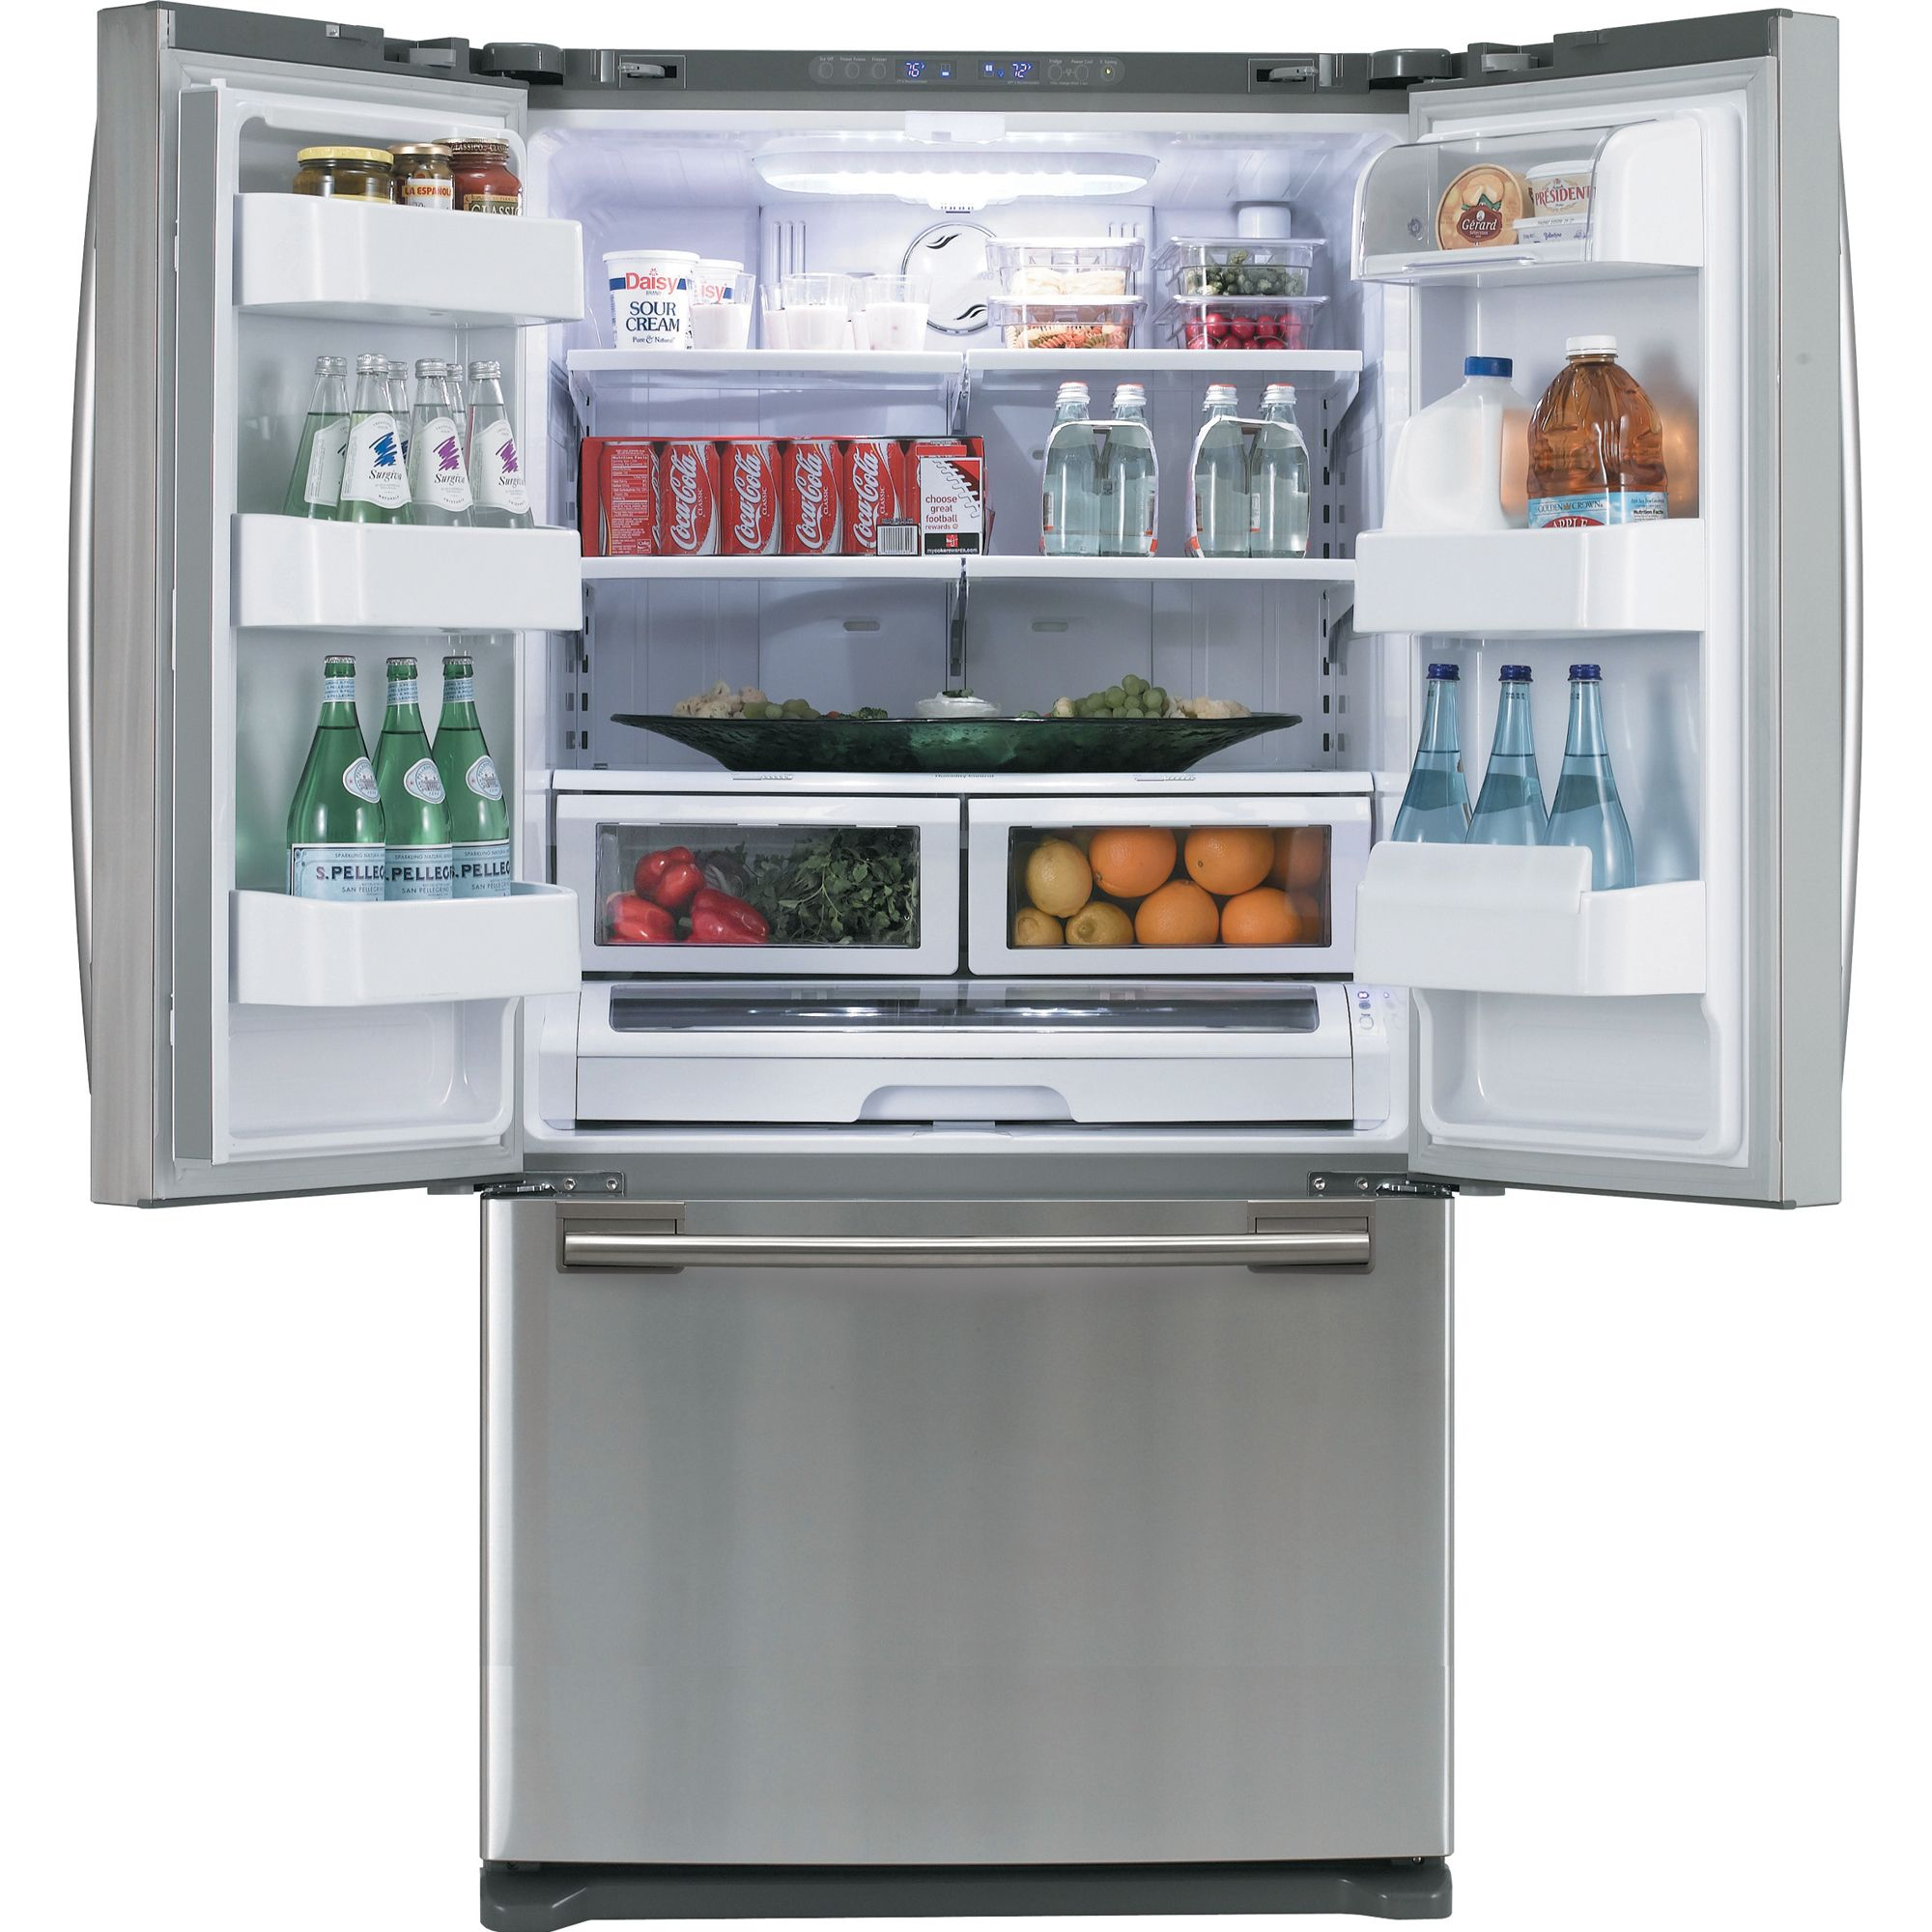 Samsung 26.0 cu. ft. French-Door Bottom Freezer Refrigerator, Stainless Steel (Model RF266AERS)